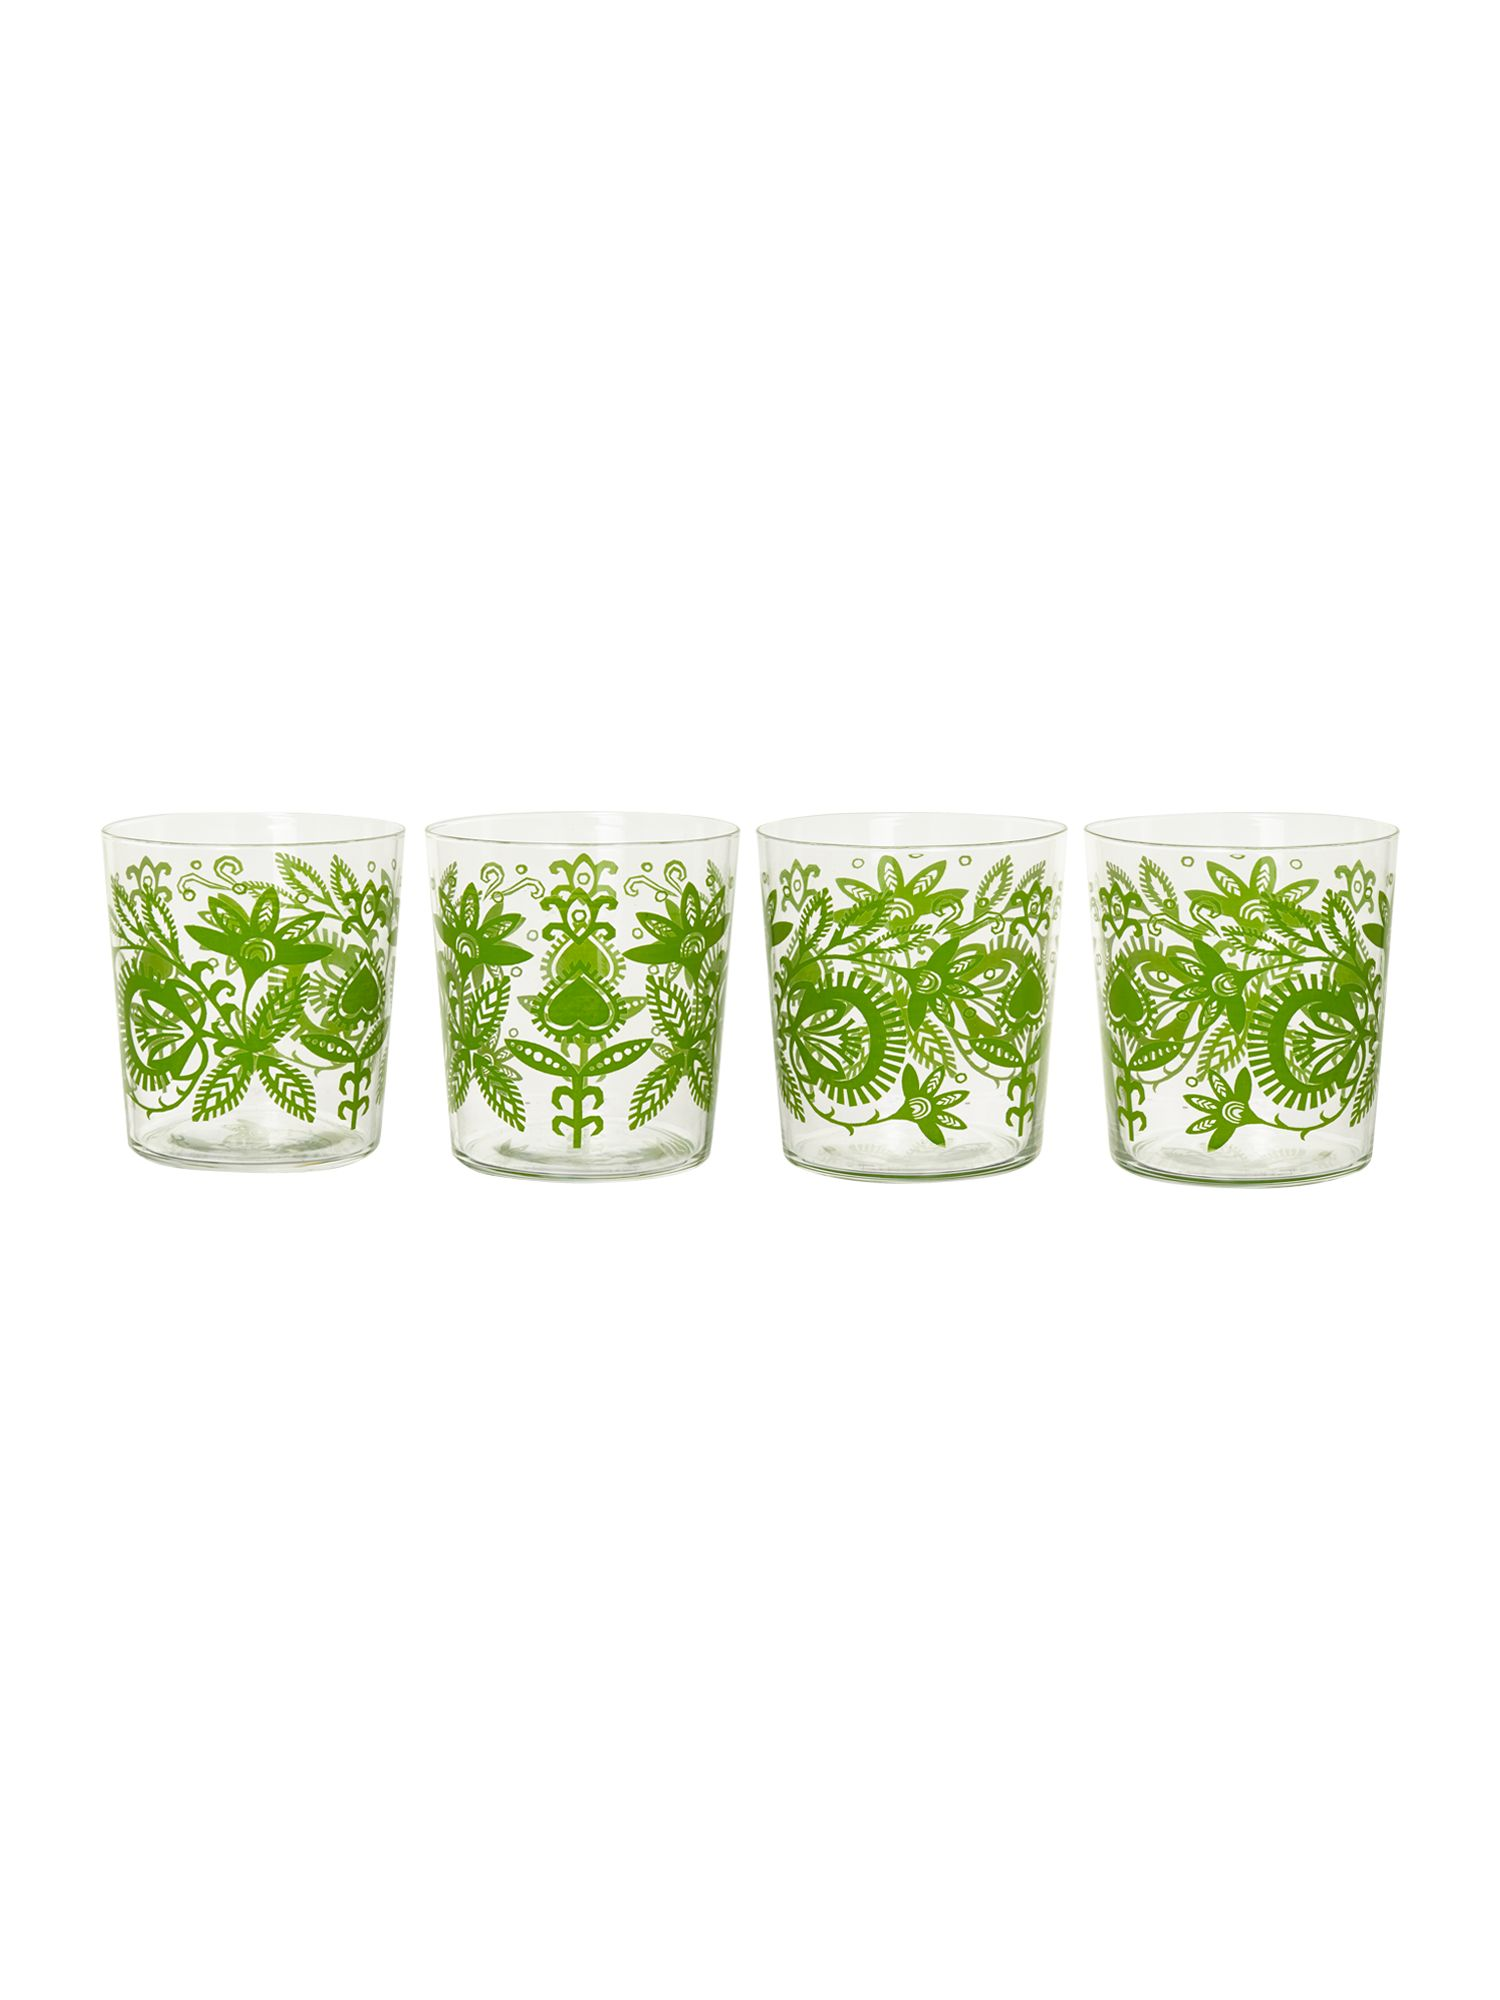 Ania tumbler set of 4